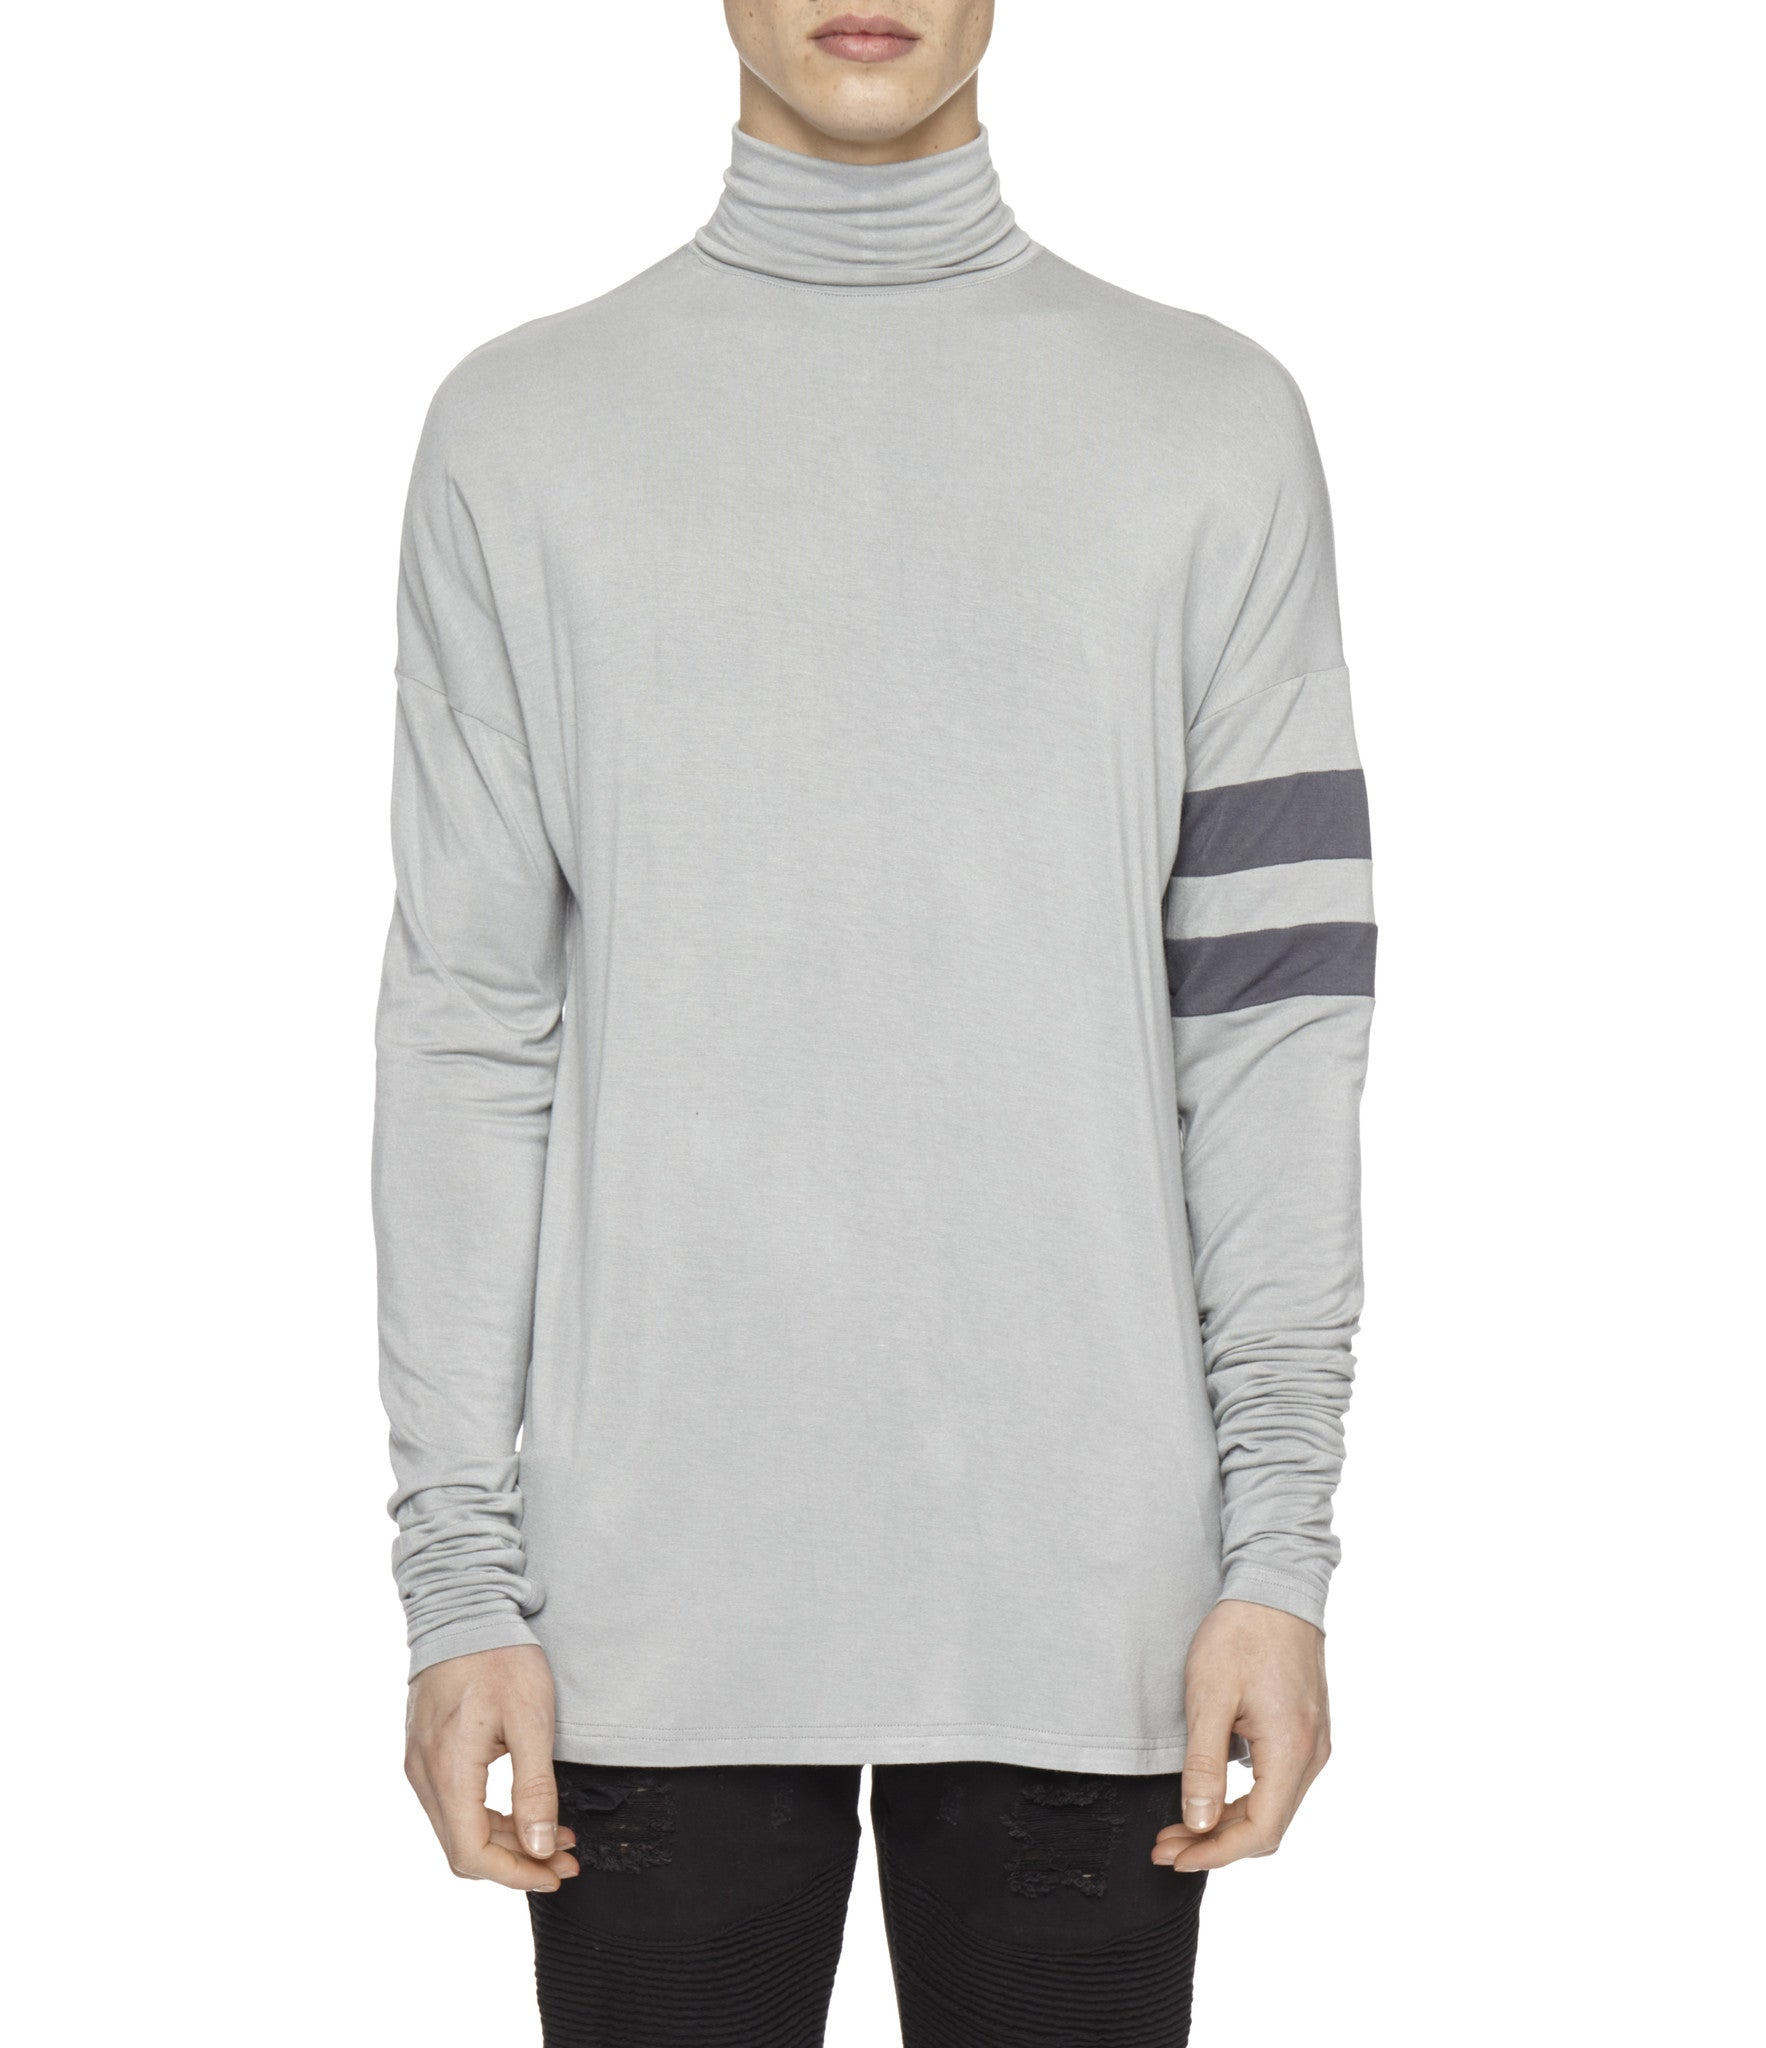 LS105 Roll Neck Under Layer L/S Tee - Ash Grey - underated london - underatedco - 3